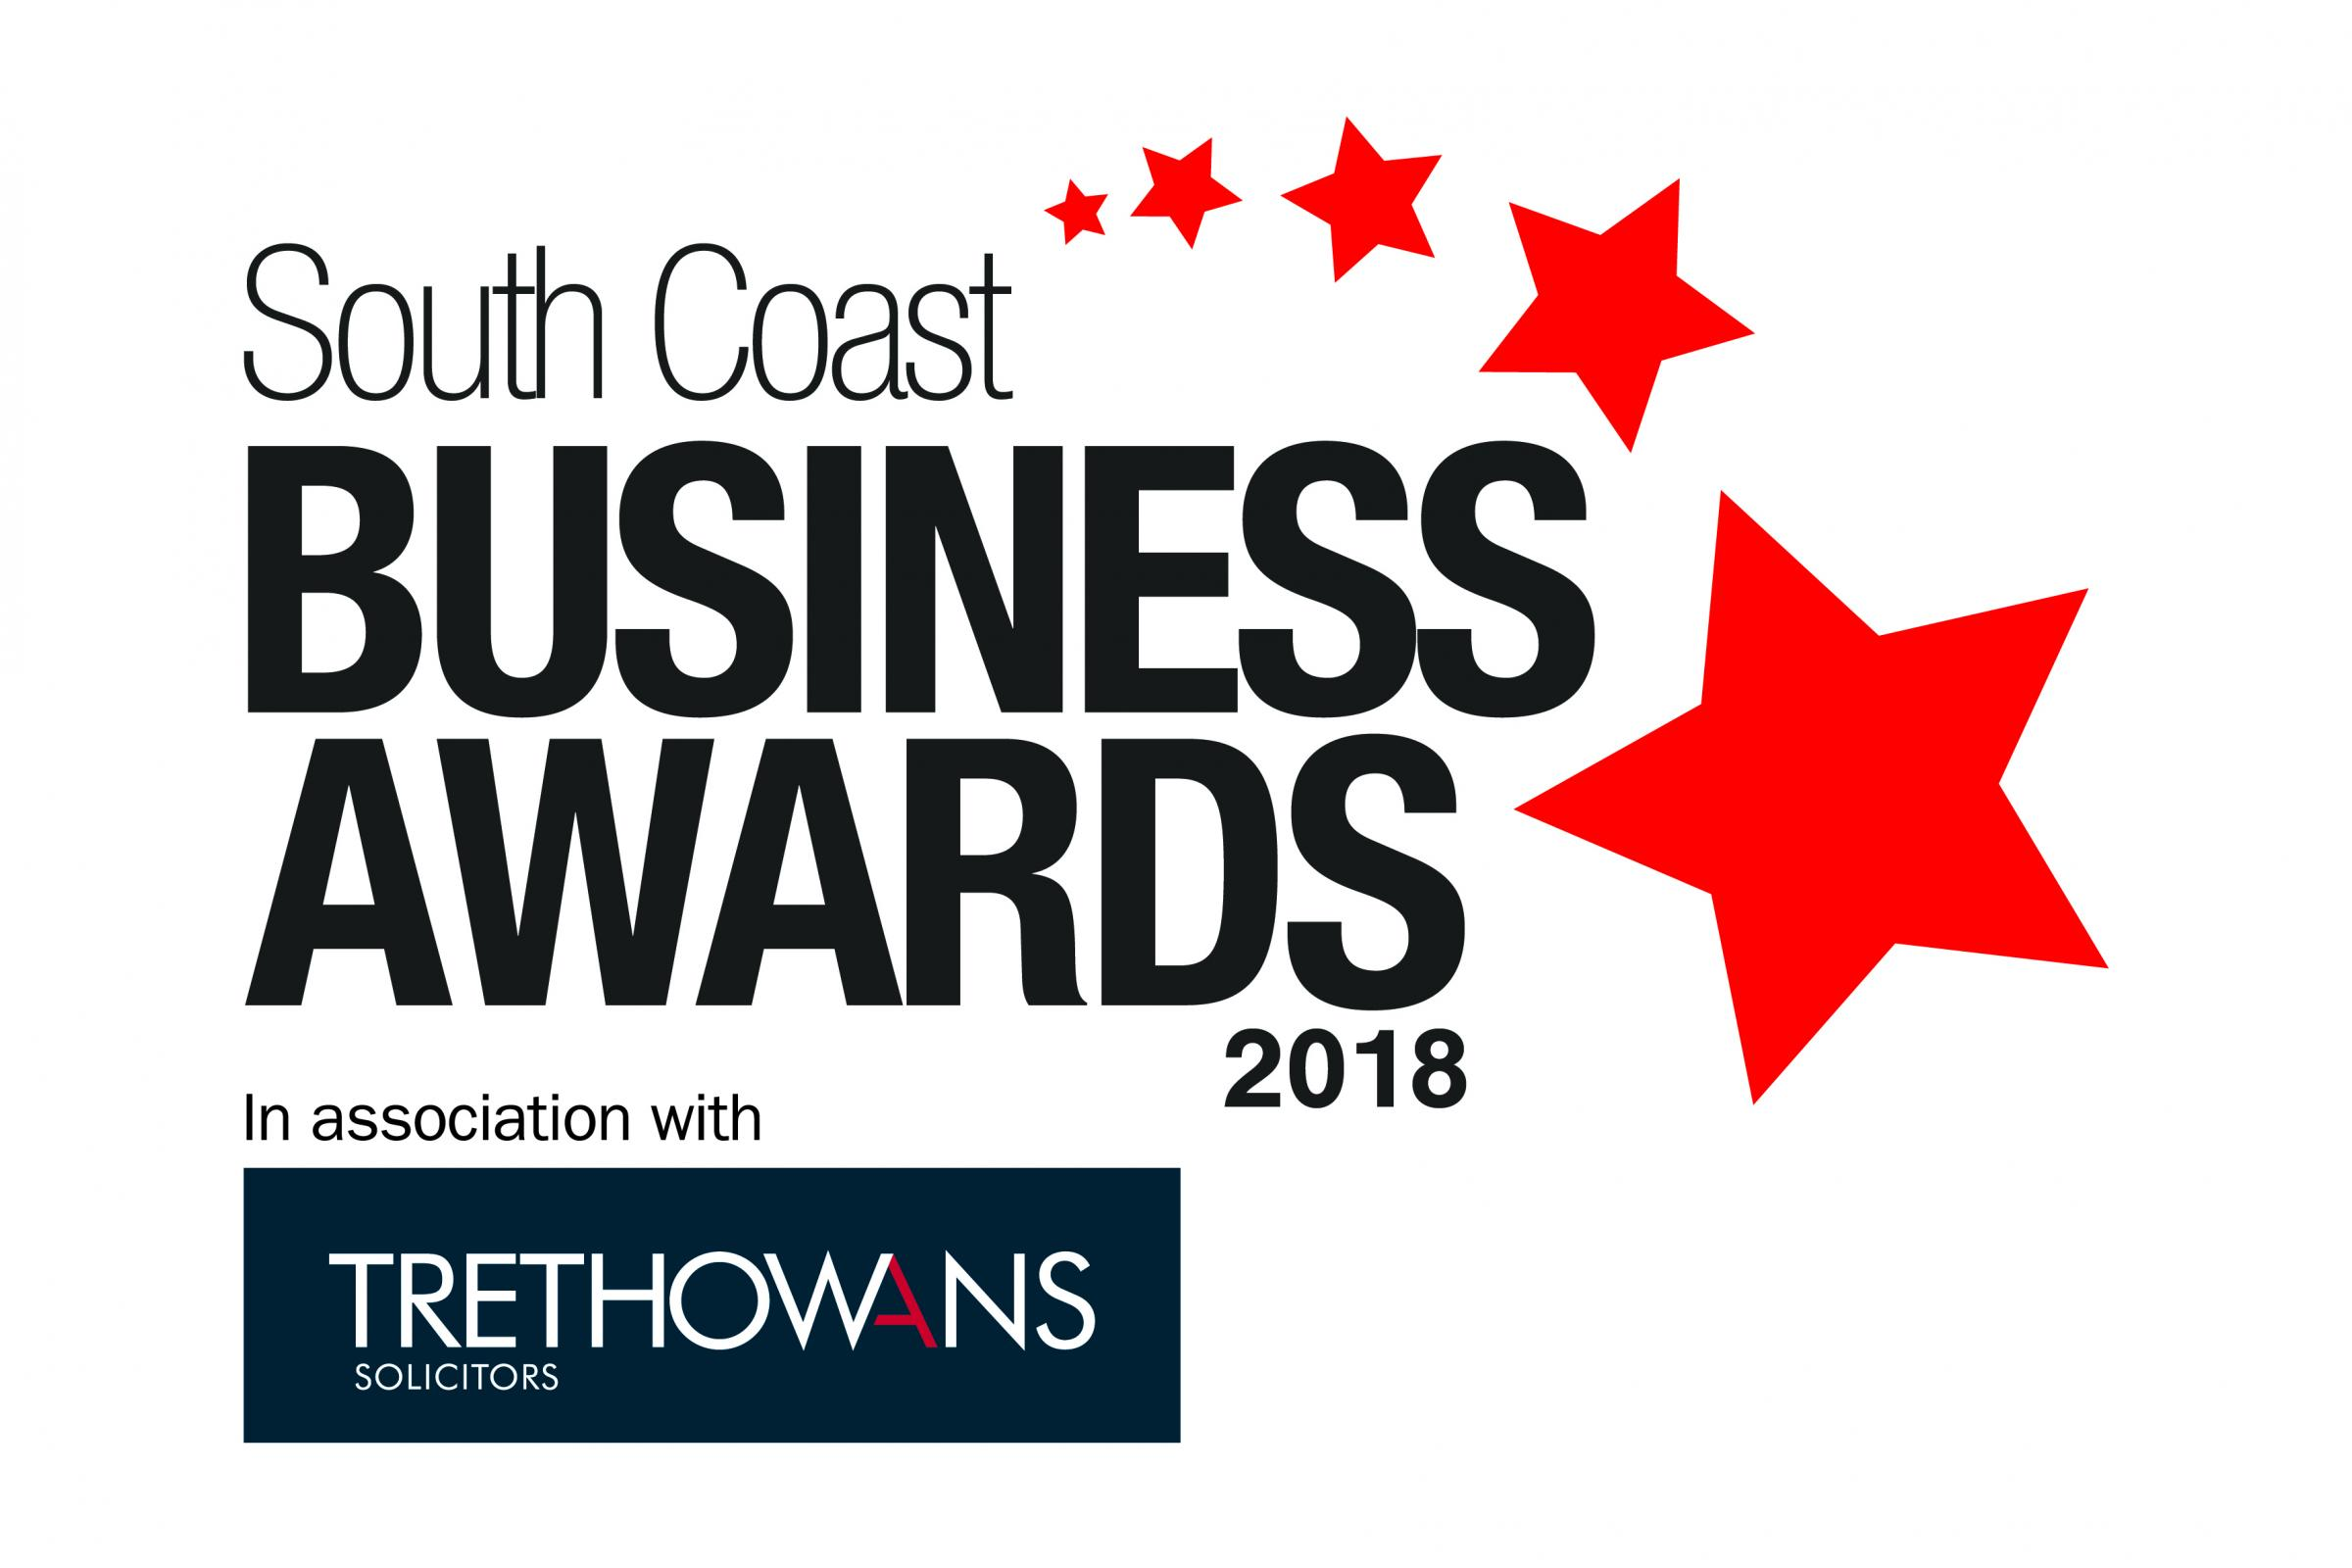 South Coast Business Awards 2018 logo